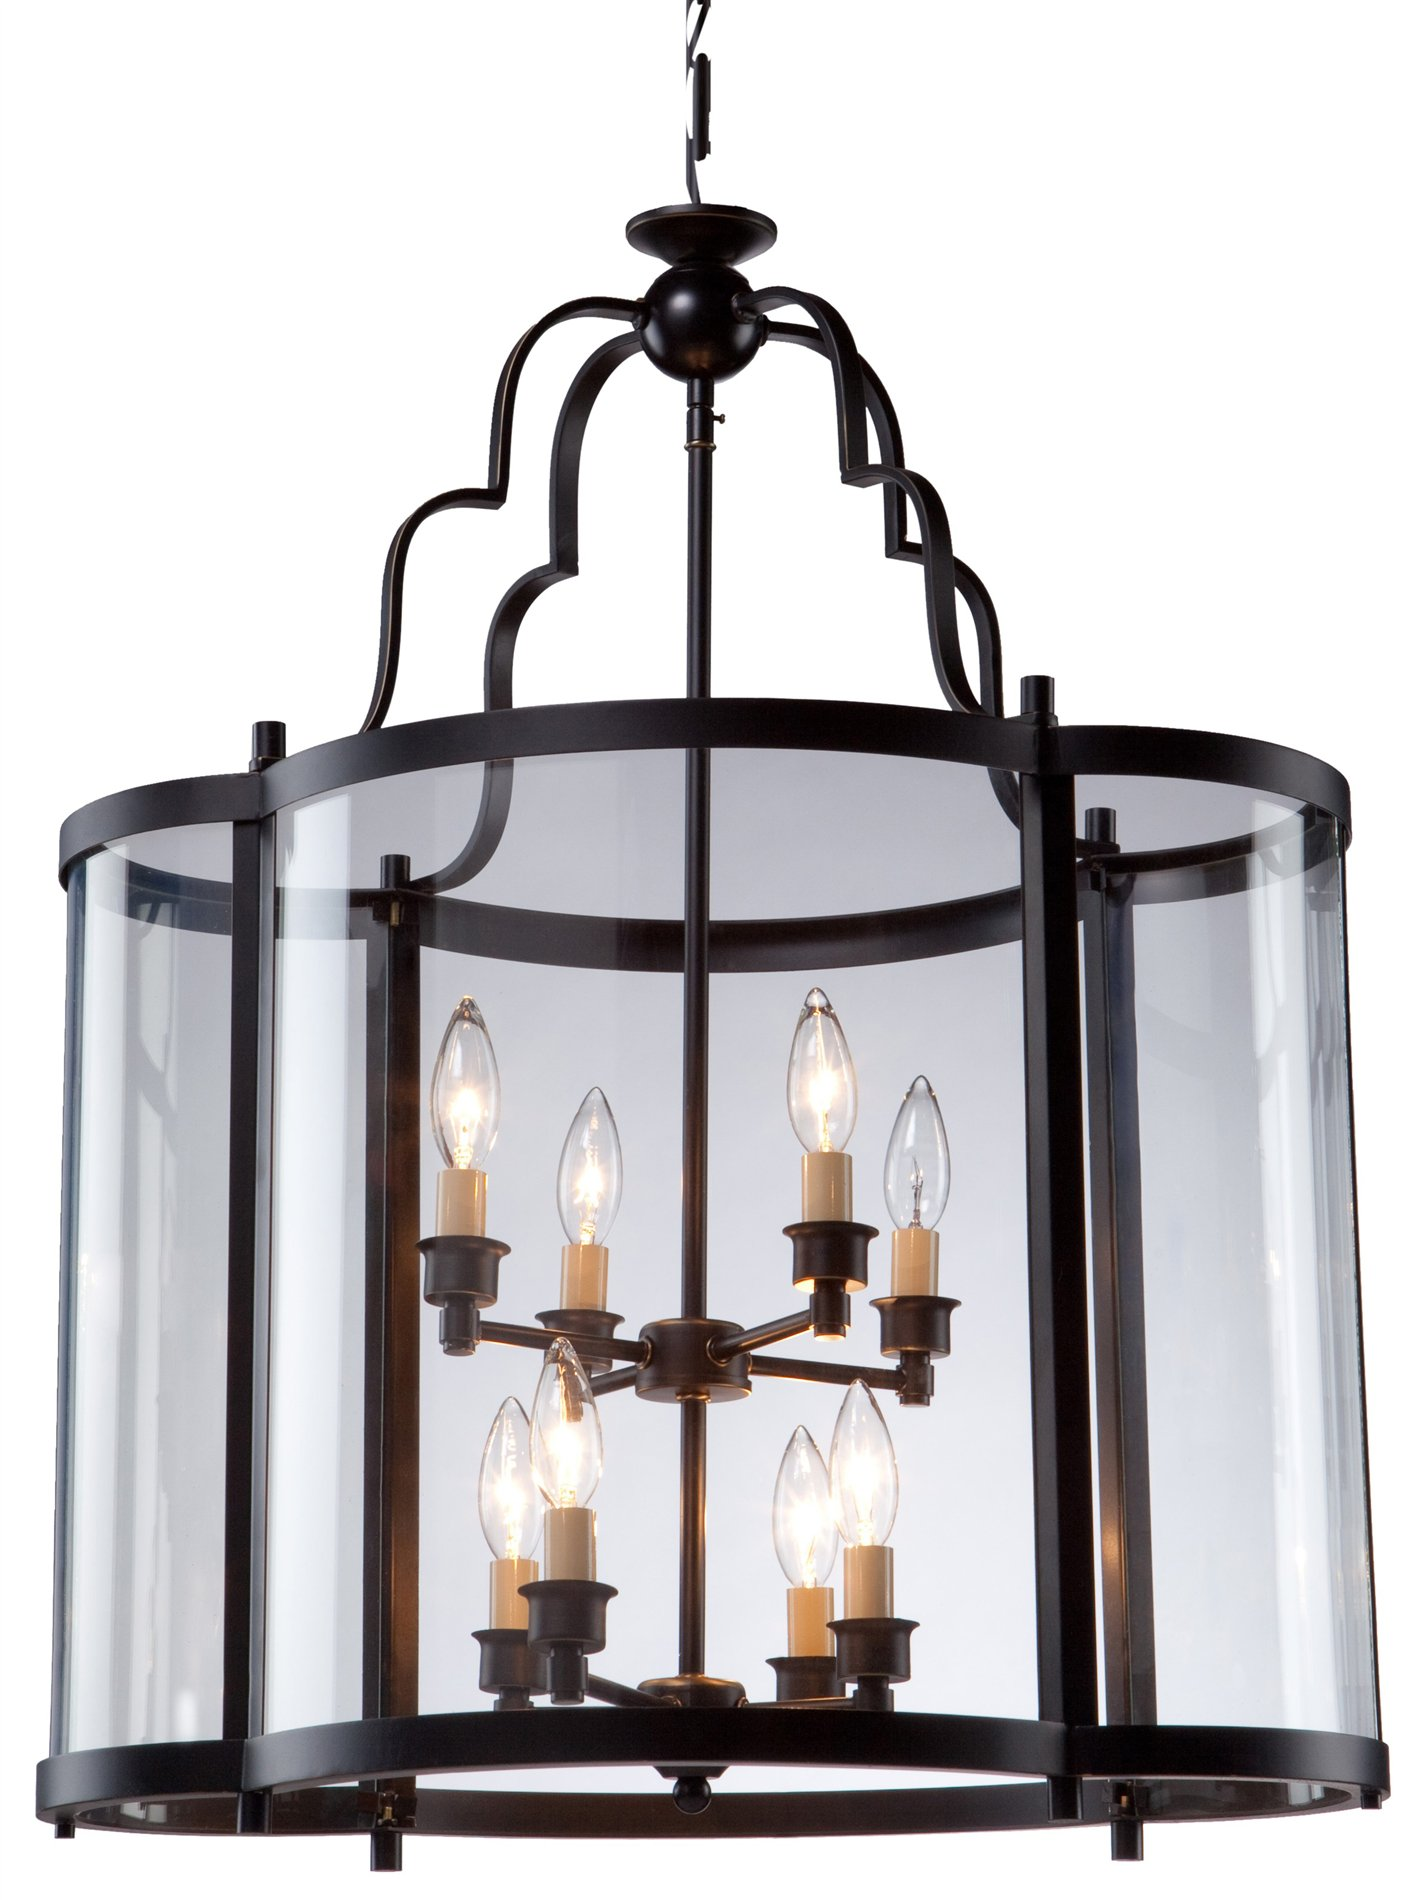 Transitional Foyer Lighting : Estate transitional foyer light xtra zb ca